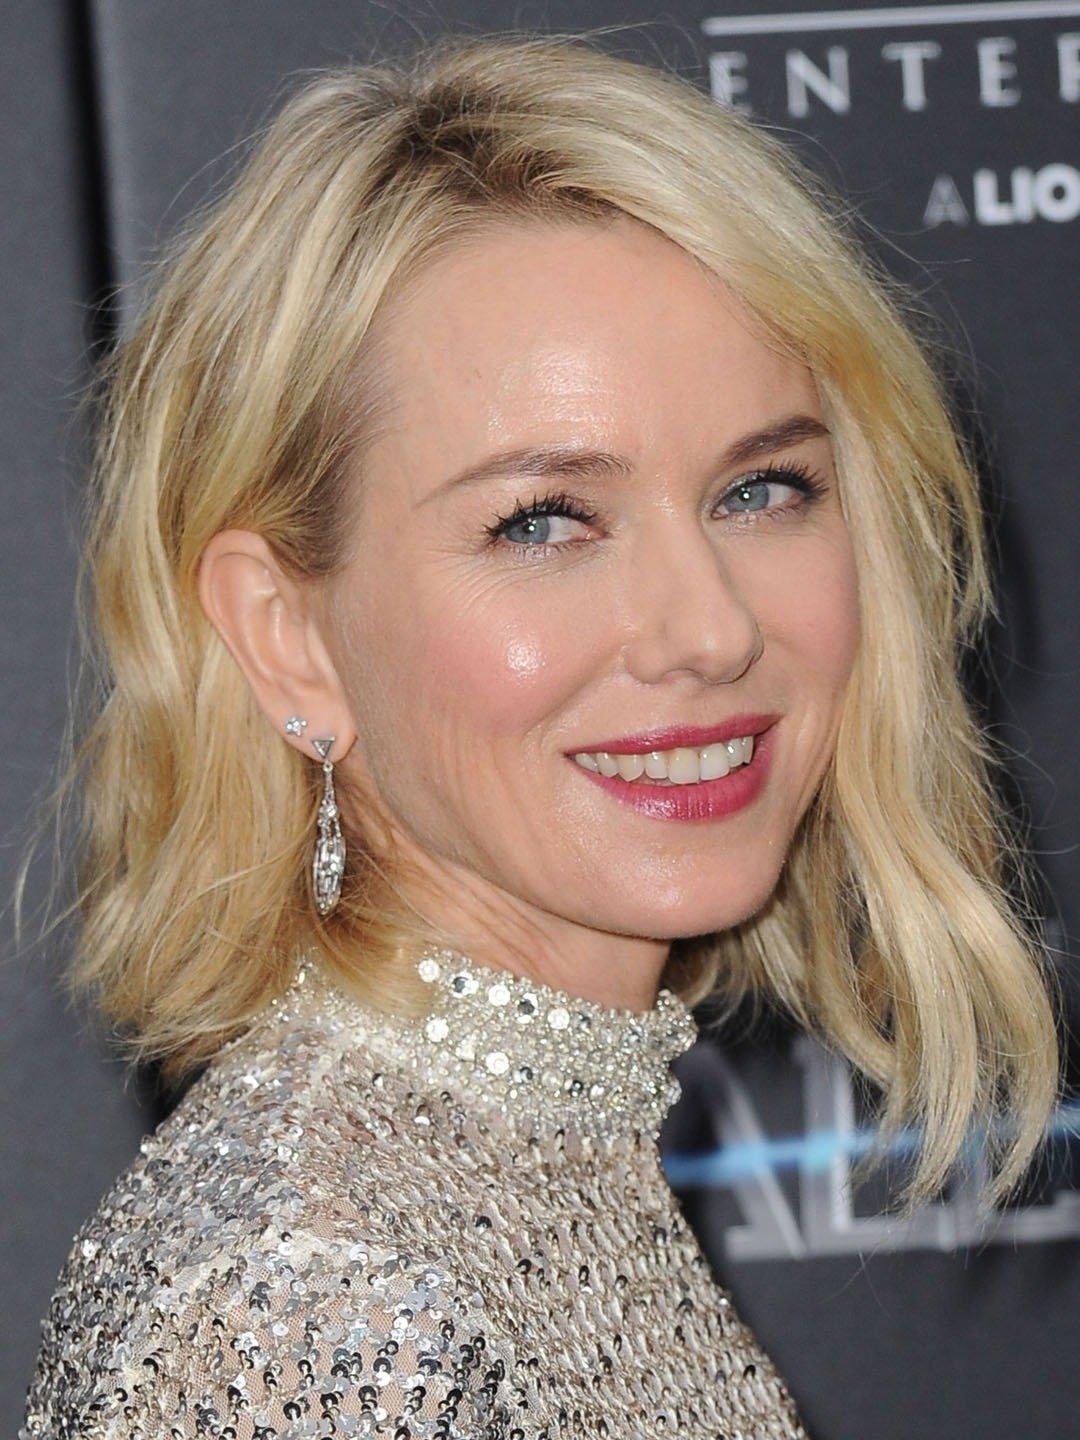 Naomi Watts | Horror Film Wiki | Fandom